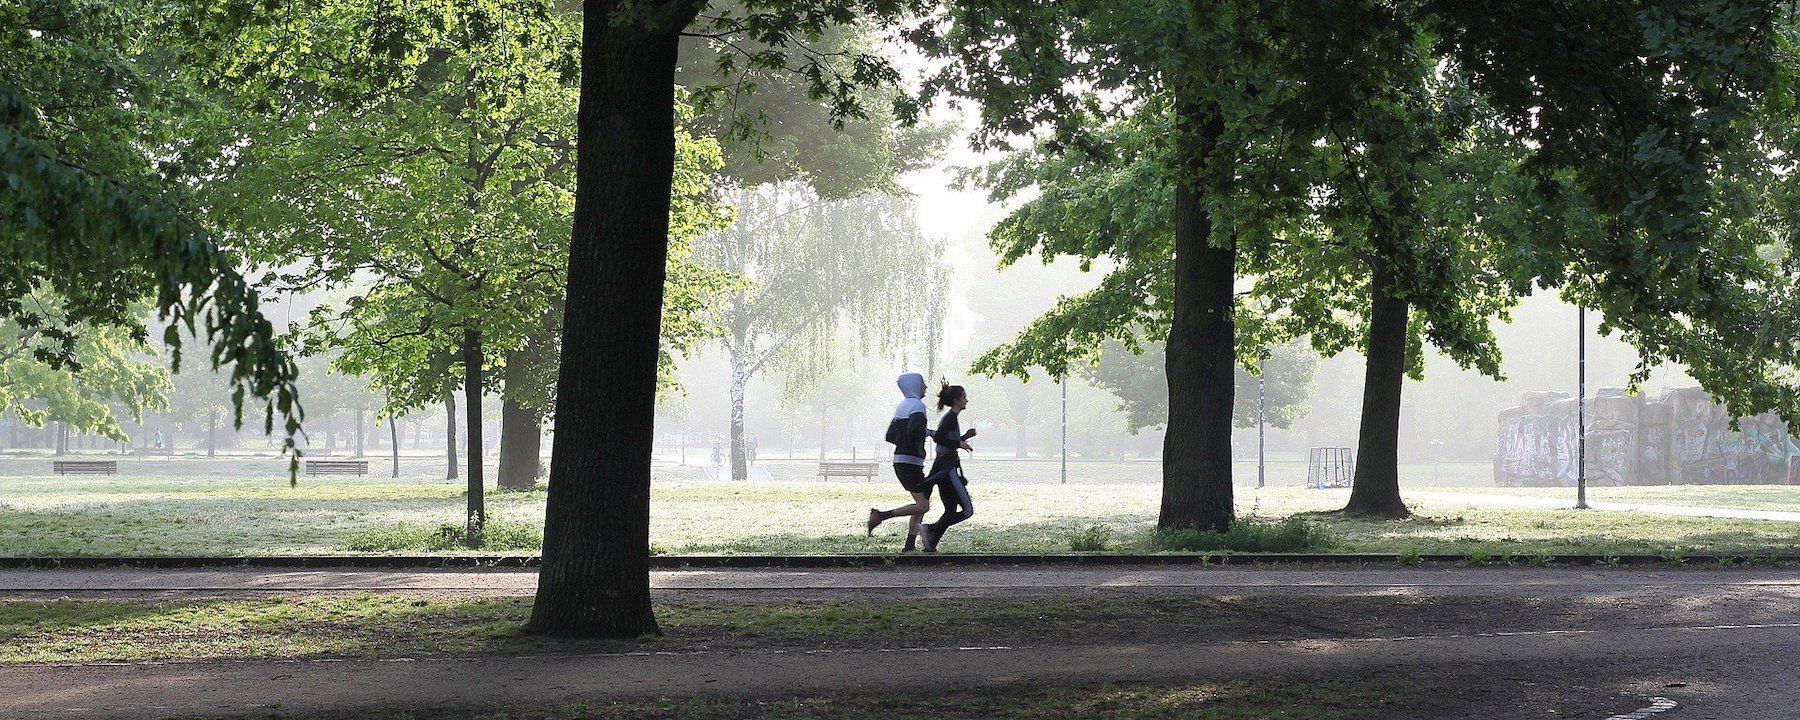 Can Exercise Explain the Health Benefits of Natural Environments?